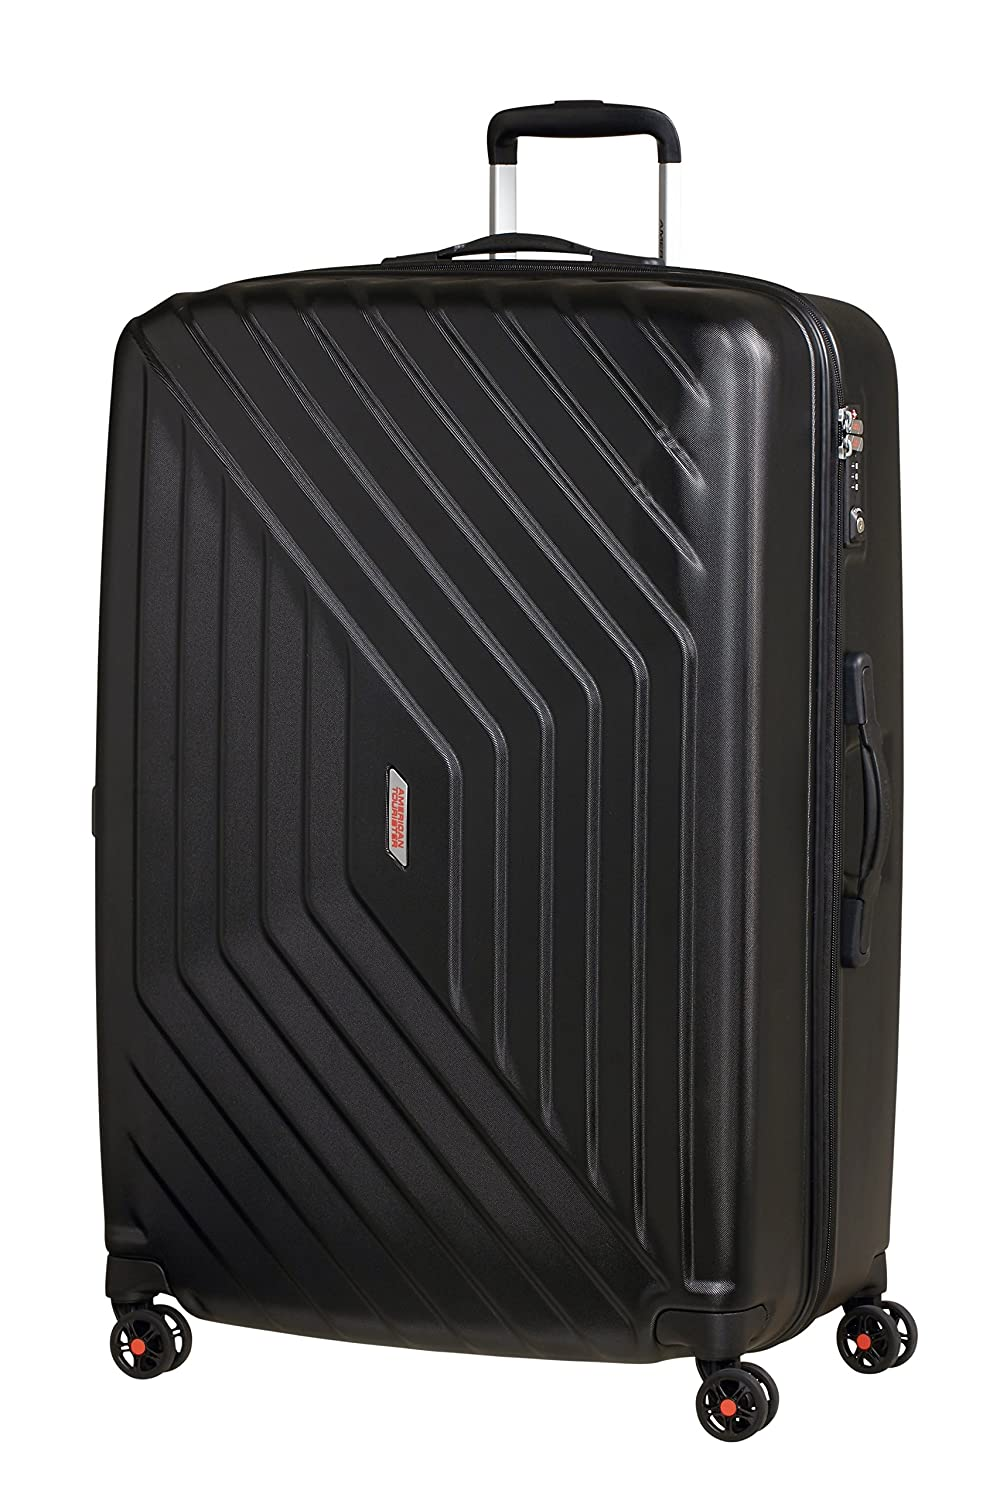 Maleta American Tourister Air Force 1 Opiniones